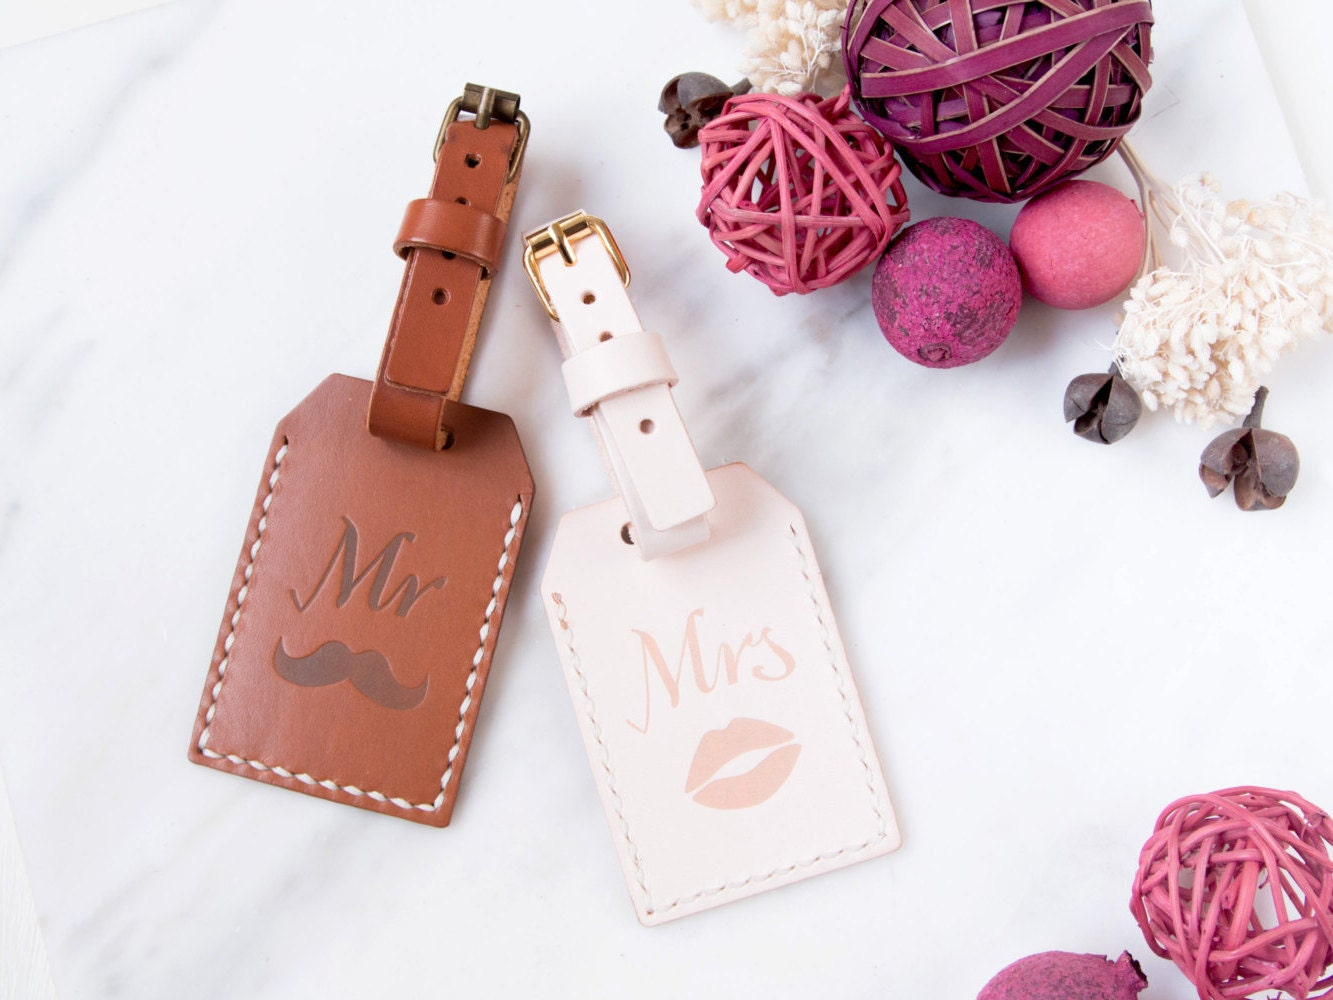 Mr and Mrs Custom Leather Luggage Tag Personalized Luggage tag